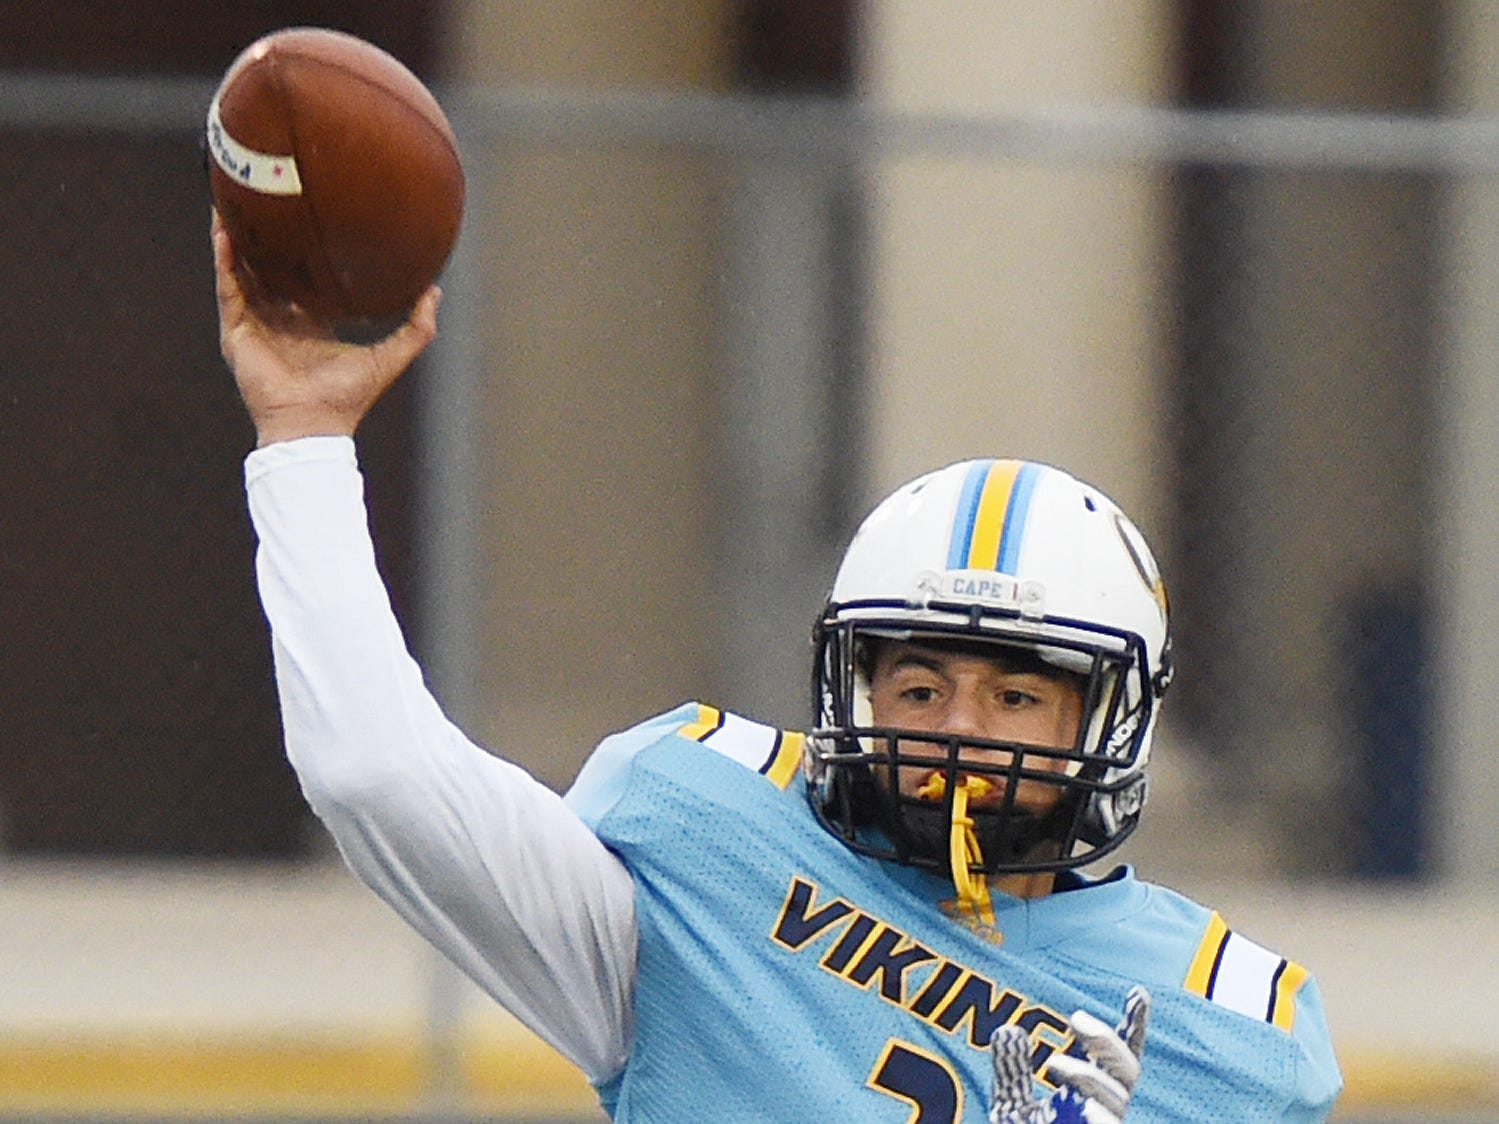 Cape Henlopen quarterback Samuel Jones throws the ball during the Oct. 26, 2018, loss to Sussex Central in Lewes.